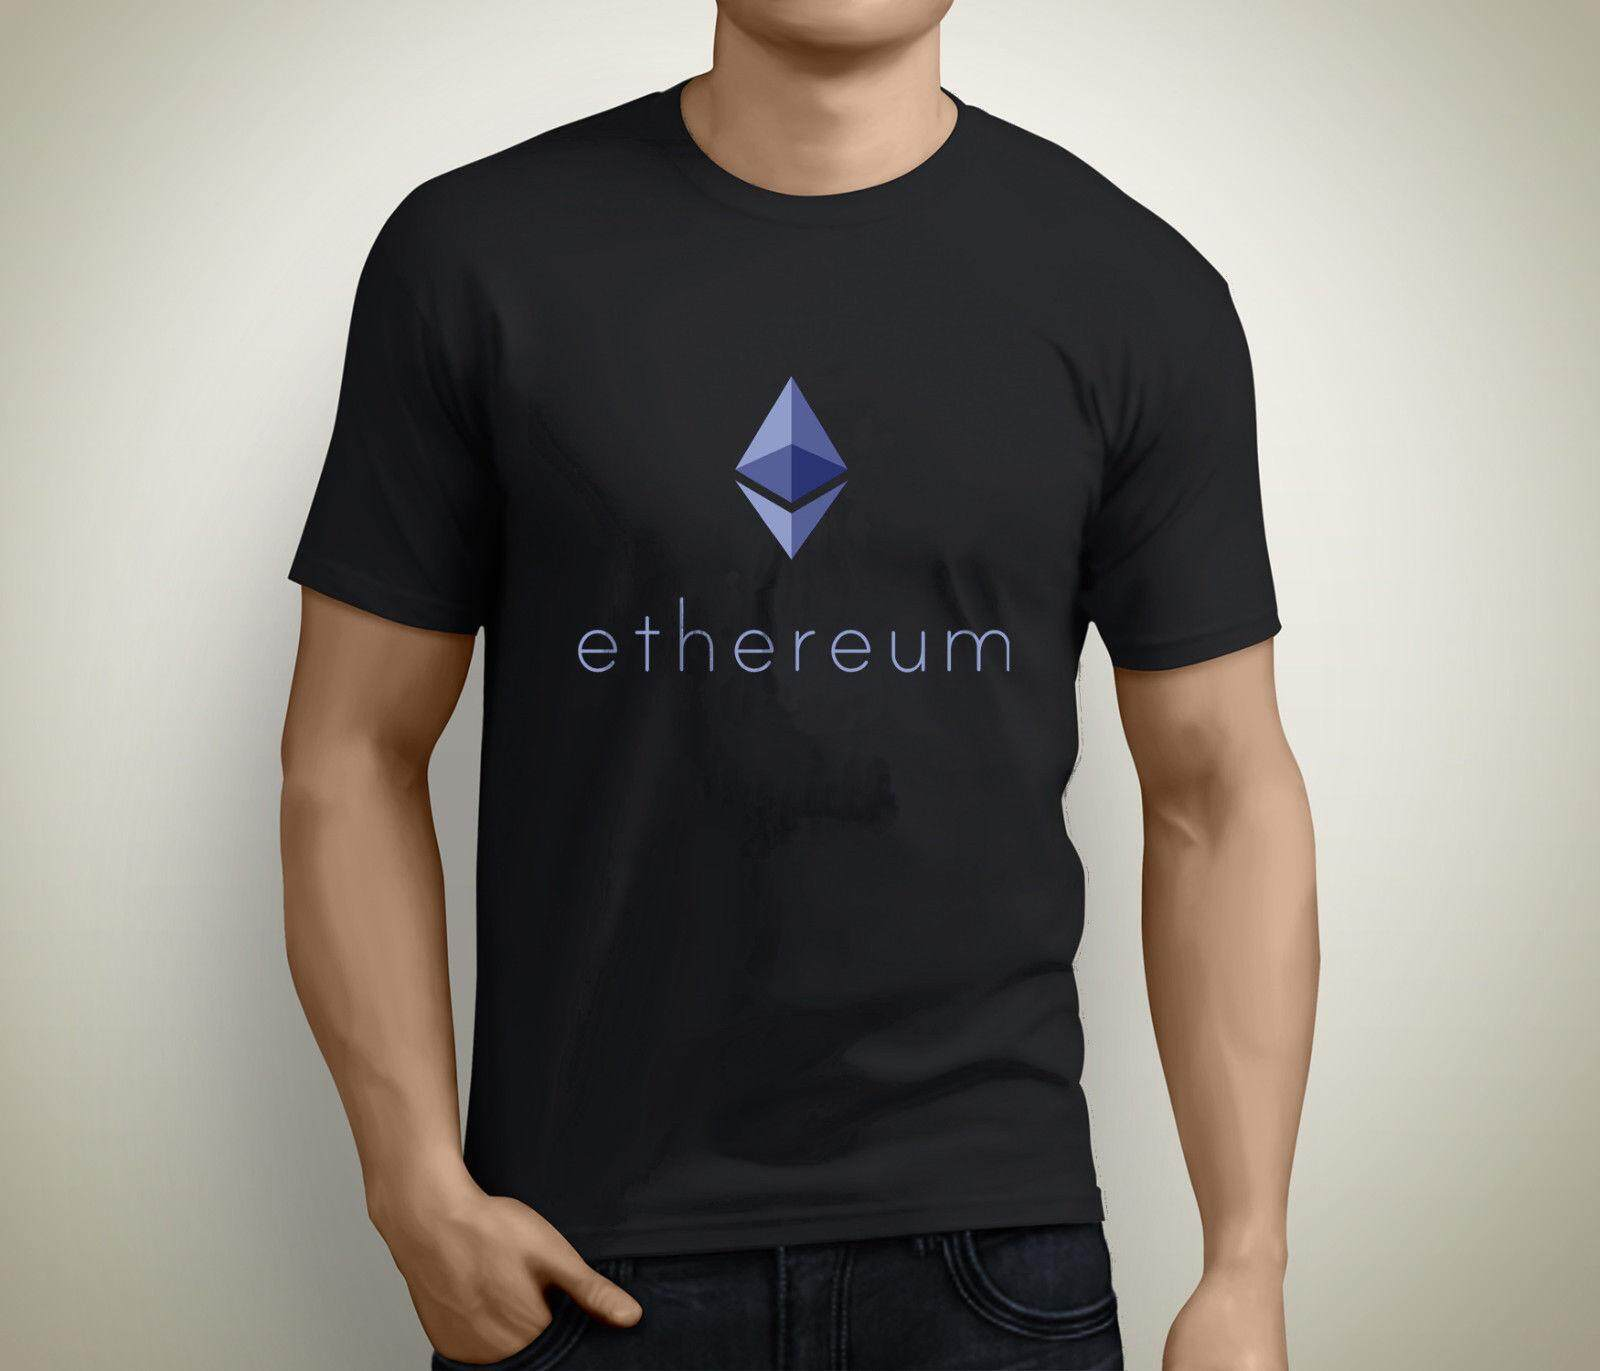 Buy Ethereum Cotton T Shirts Men Short Sleeved Tshirt Man Tee Round Intl